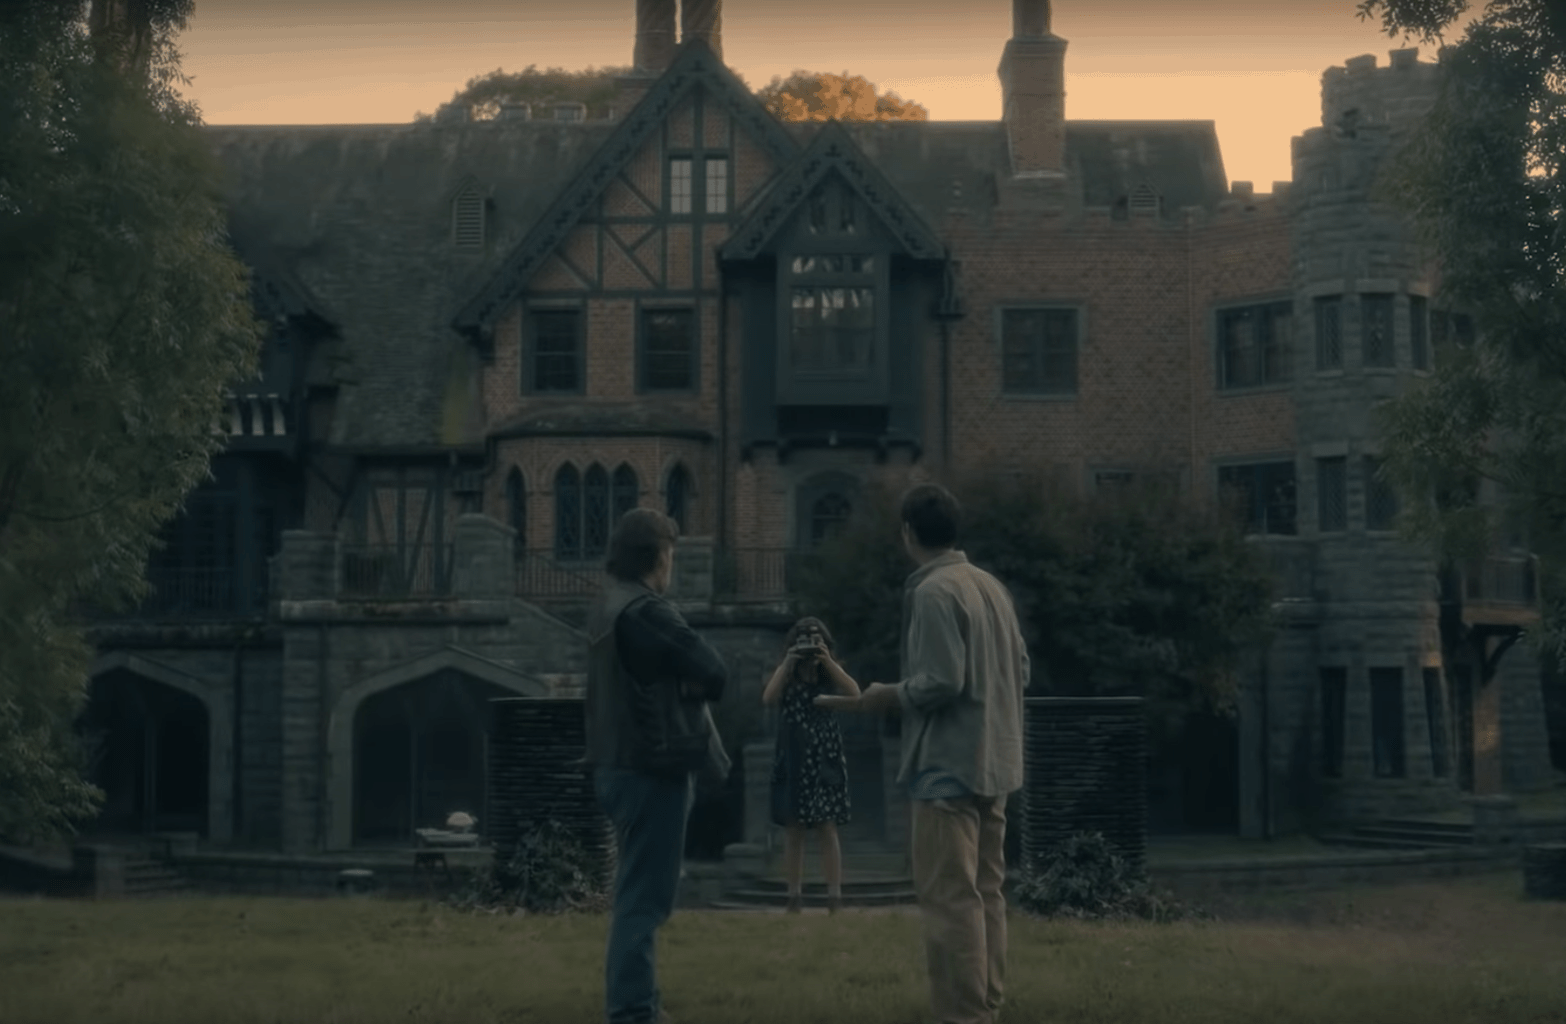 Trailer For The Haunting Of Hill House The Malestrom